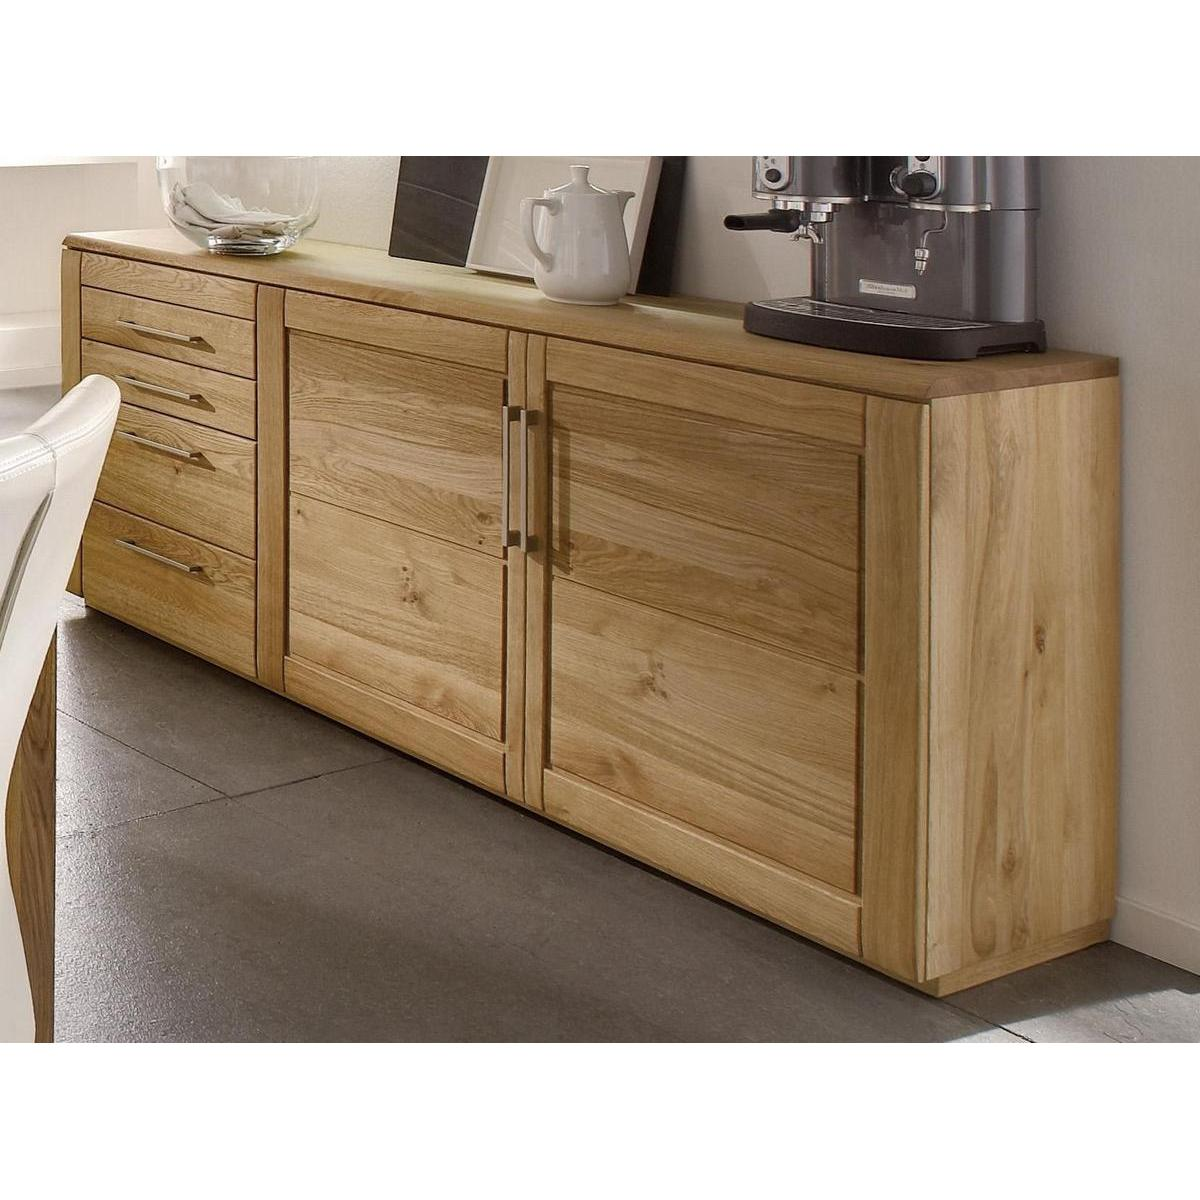 sideboard wildeiche bestseller shop f r m bel und einrichtungen. Black Bedroom Furniture Sets. Home Design Ideas